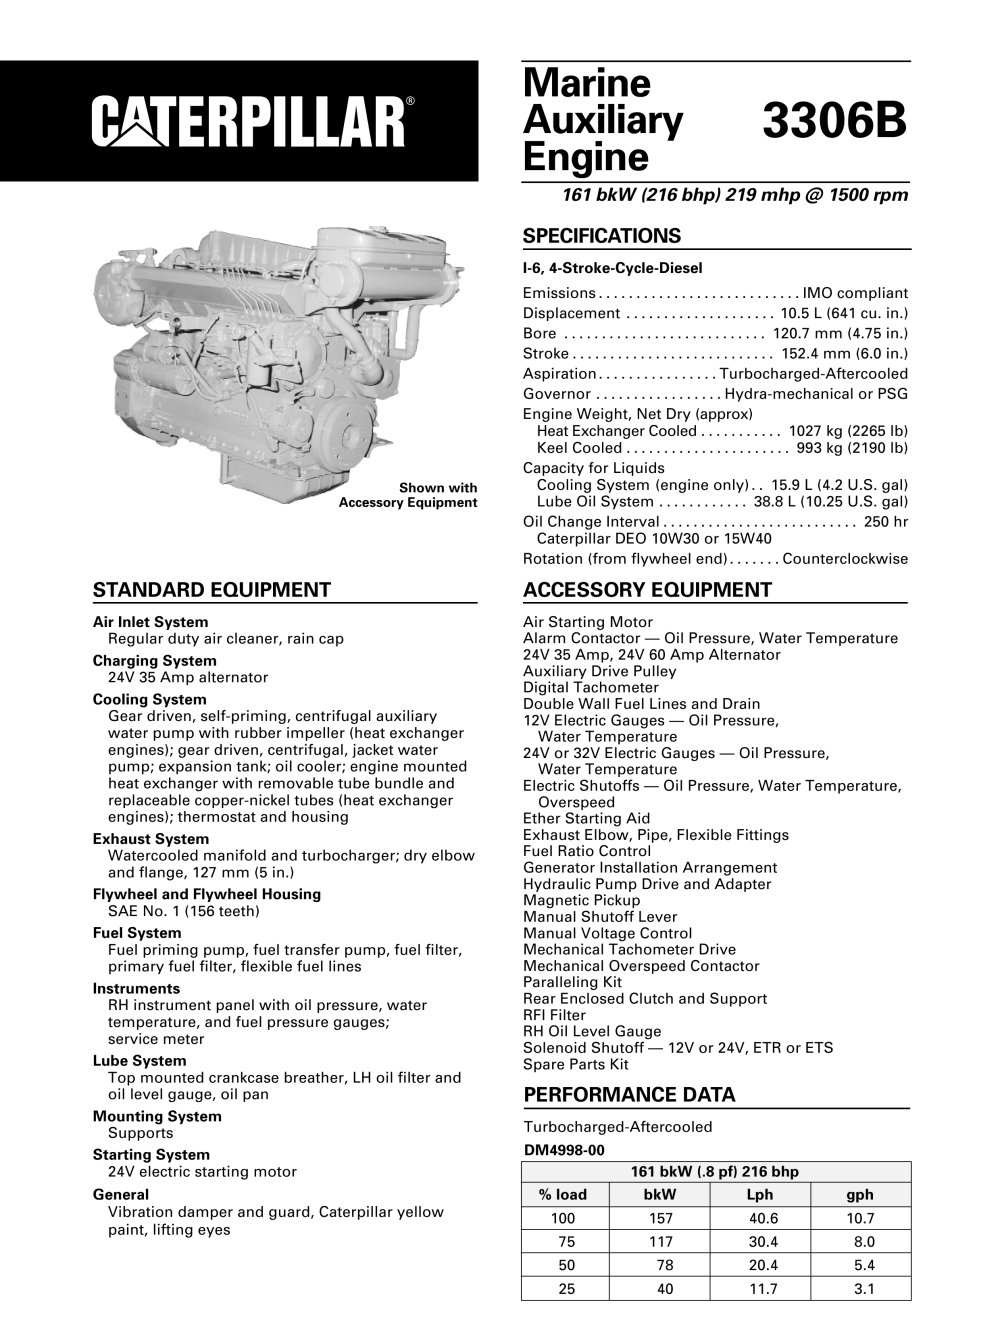 Cat 3126 Marine Service Manual User Guide That Easy To Read Engine Diagram 3306b Dita Auxiliary Caterpillar Power Systems Pdf Rh Nauticexpo Com Problems